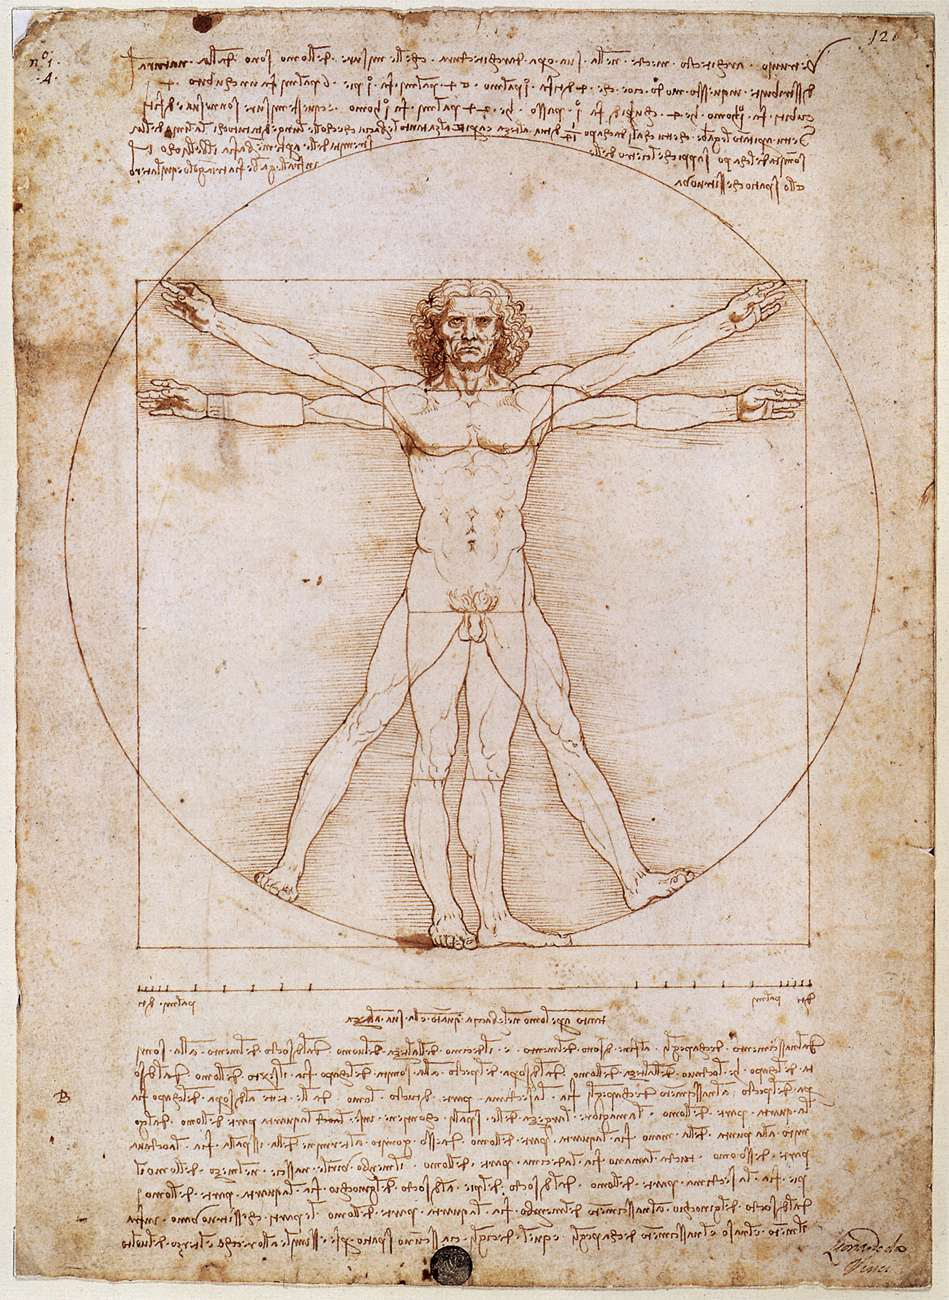 The Anatomy of Art: The History of Anatomy - Leonardo Da Vinci